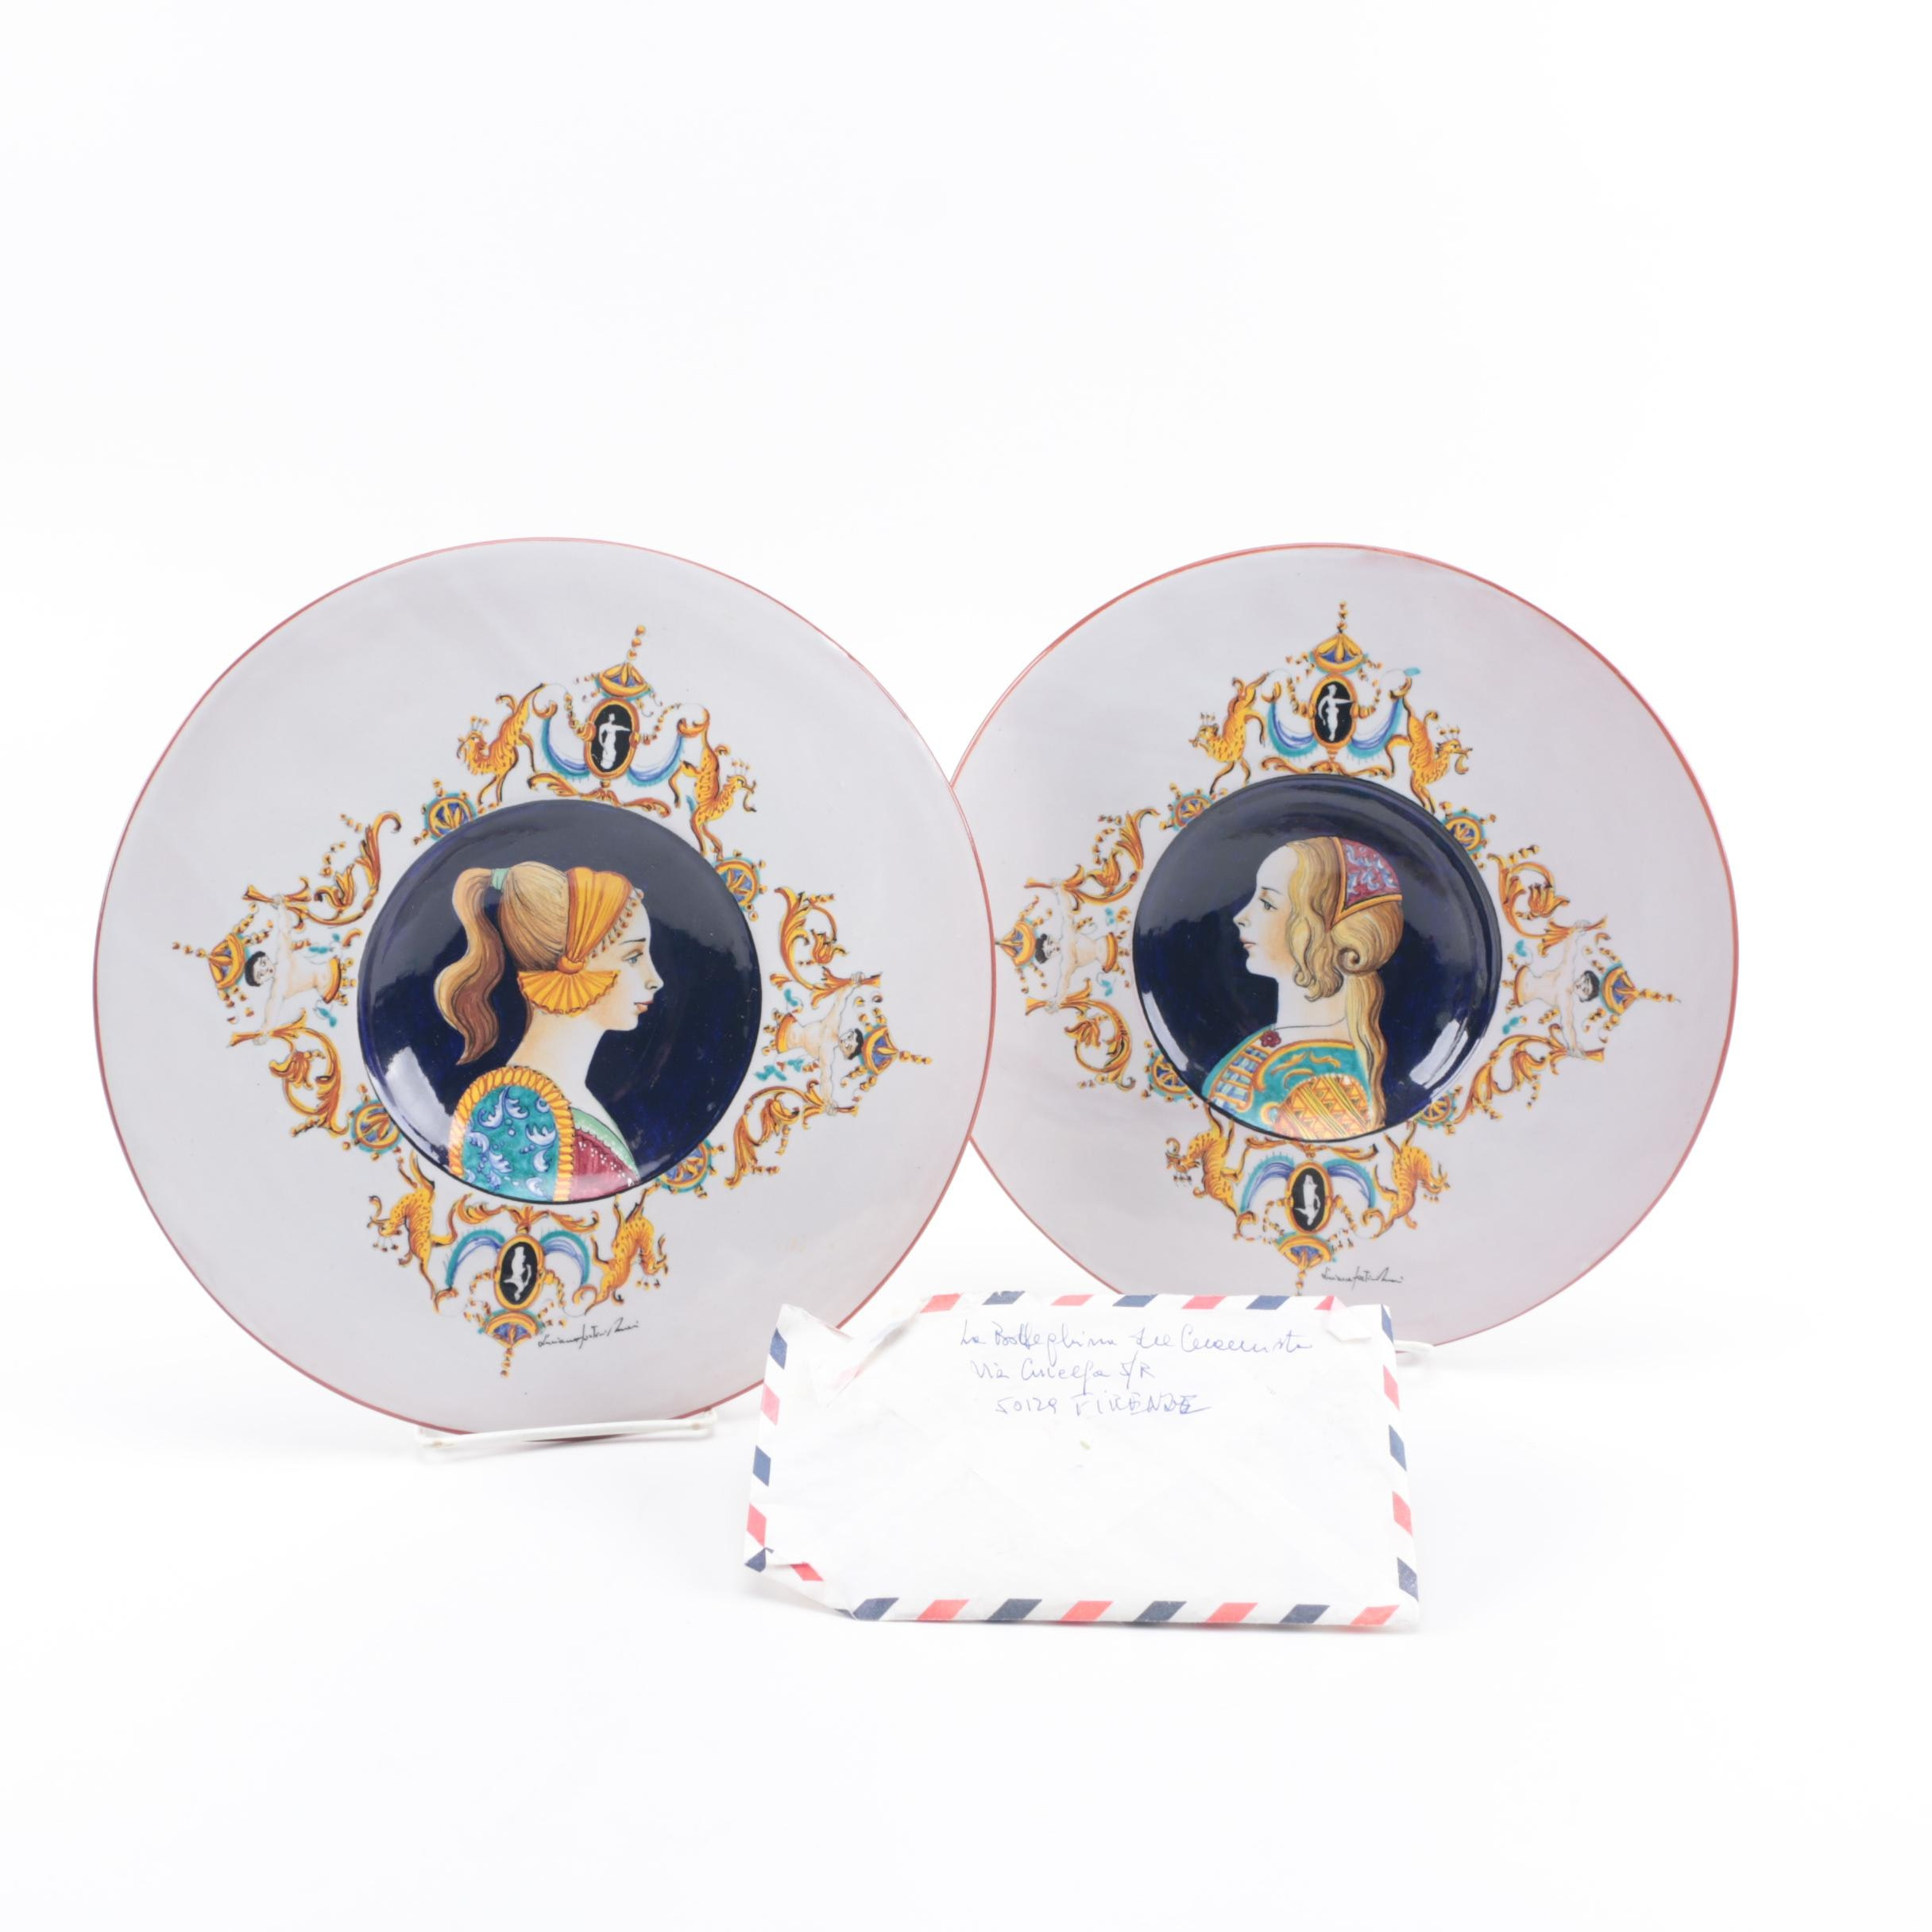 Hand Painted Reproduction Plates after Nicola Pellipario